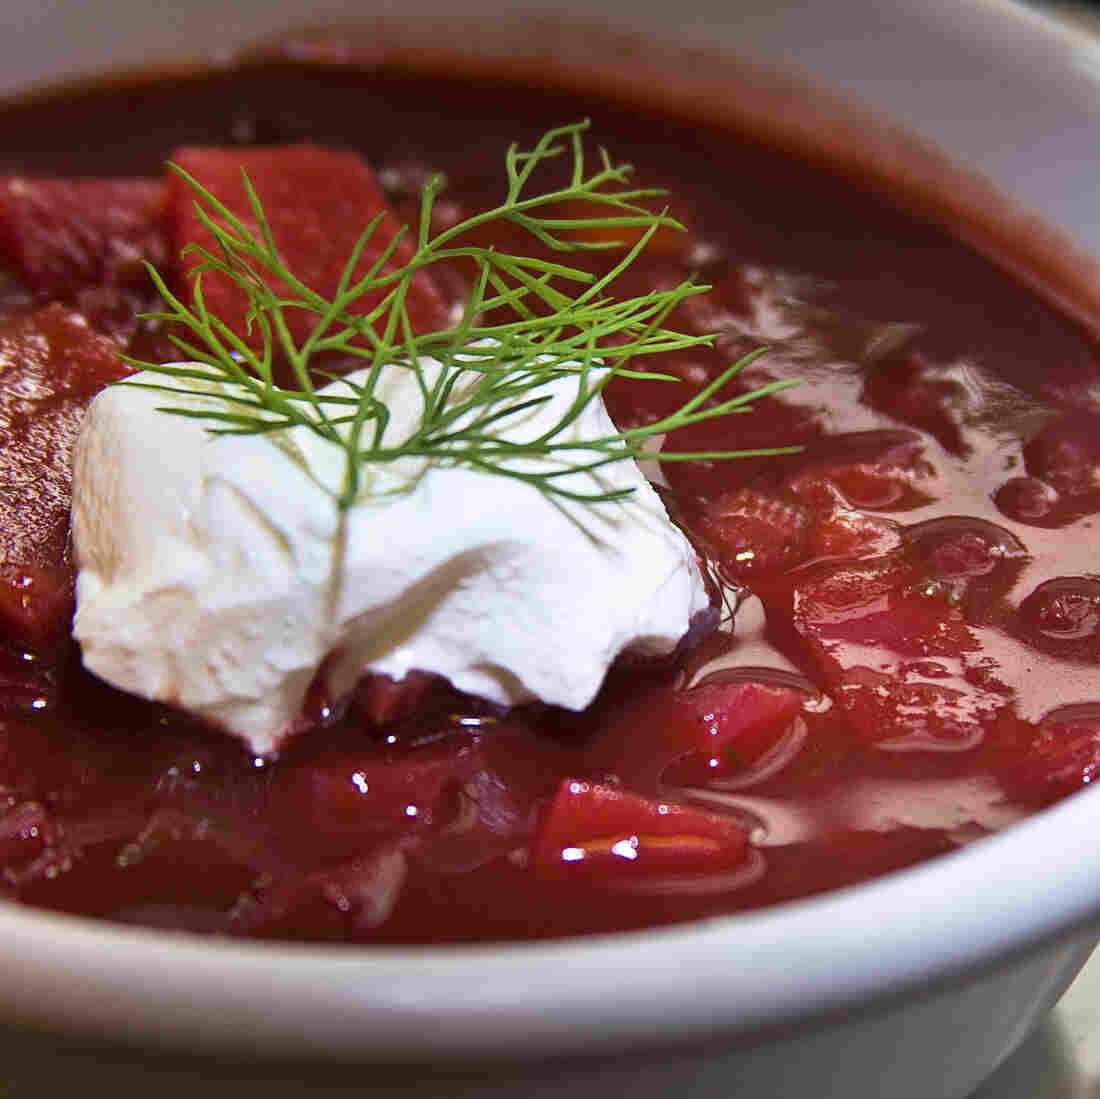 Borscht Make Your Heart Beet? They're Serving 70,000 Gallons In Sochi